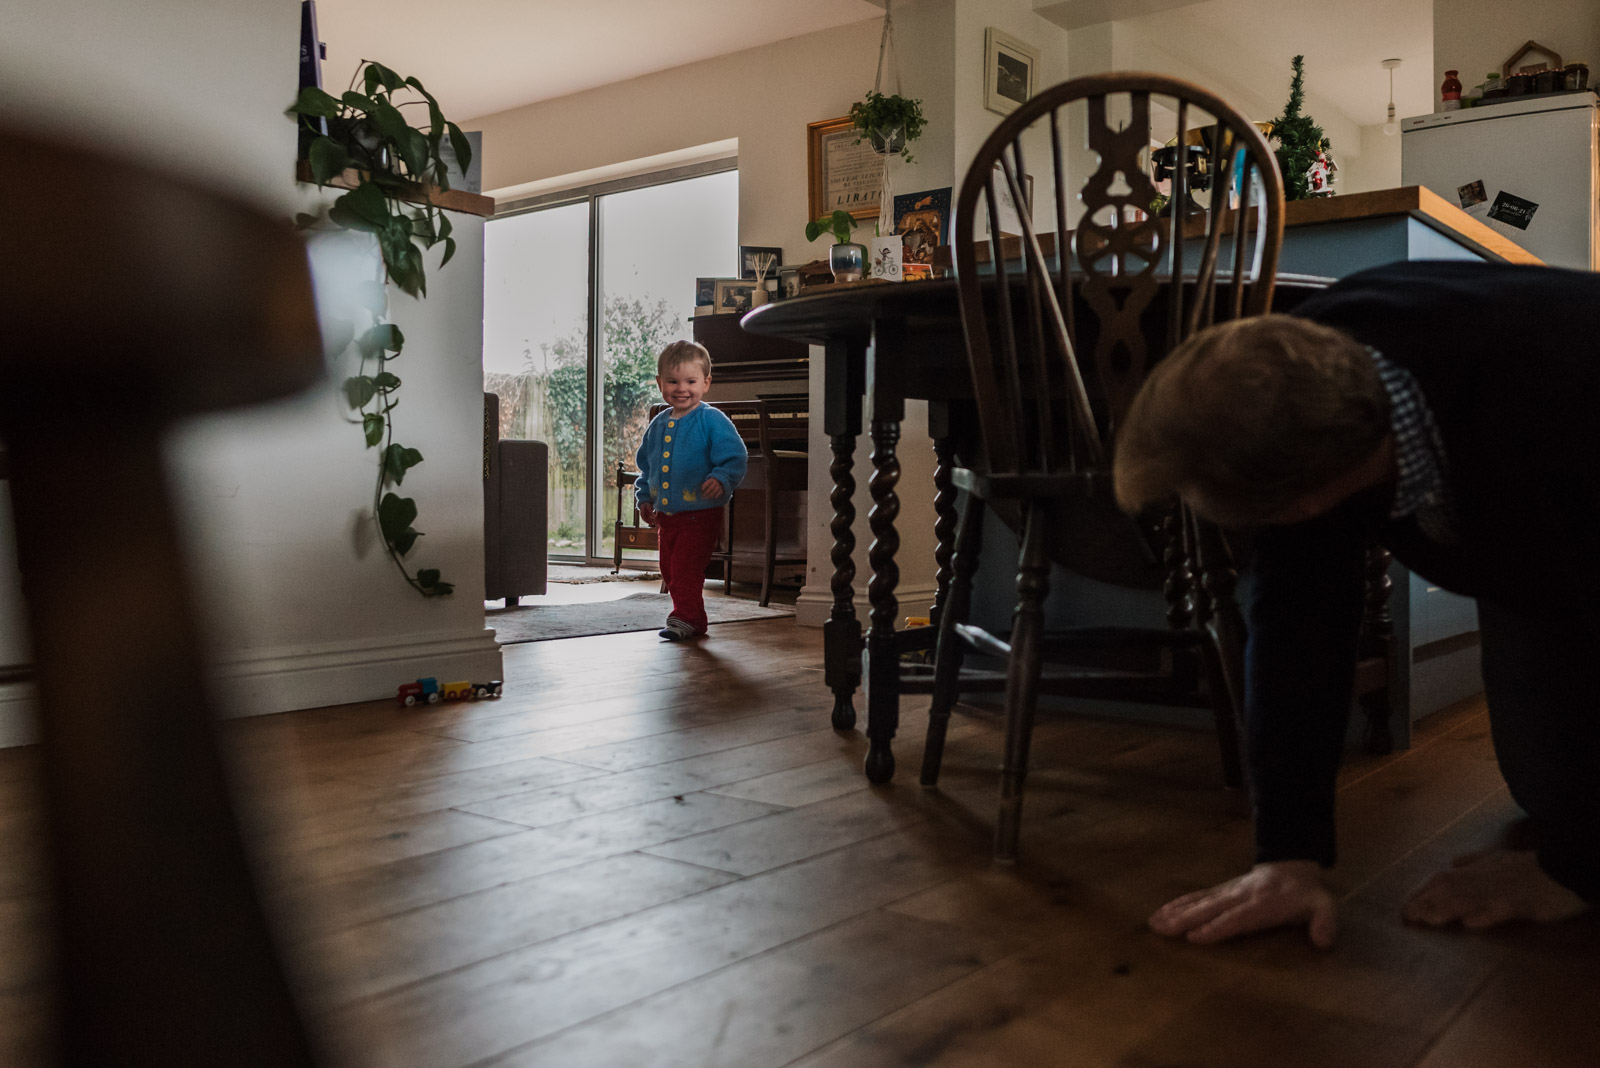 Natural family photography, boy playing games with Dad, taken by The Ginger Collective Photography